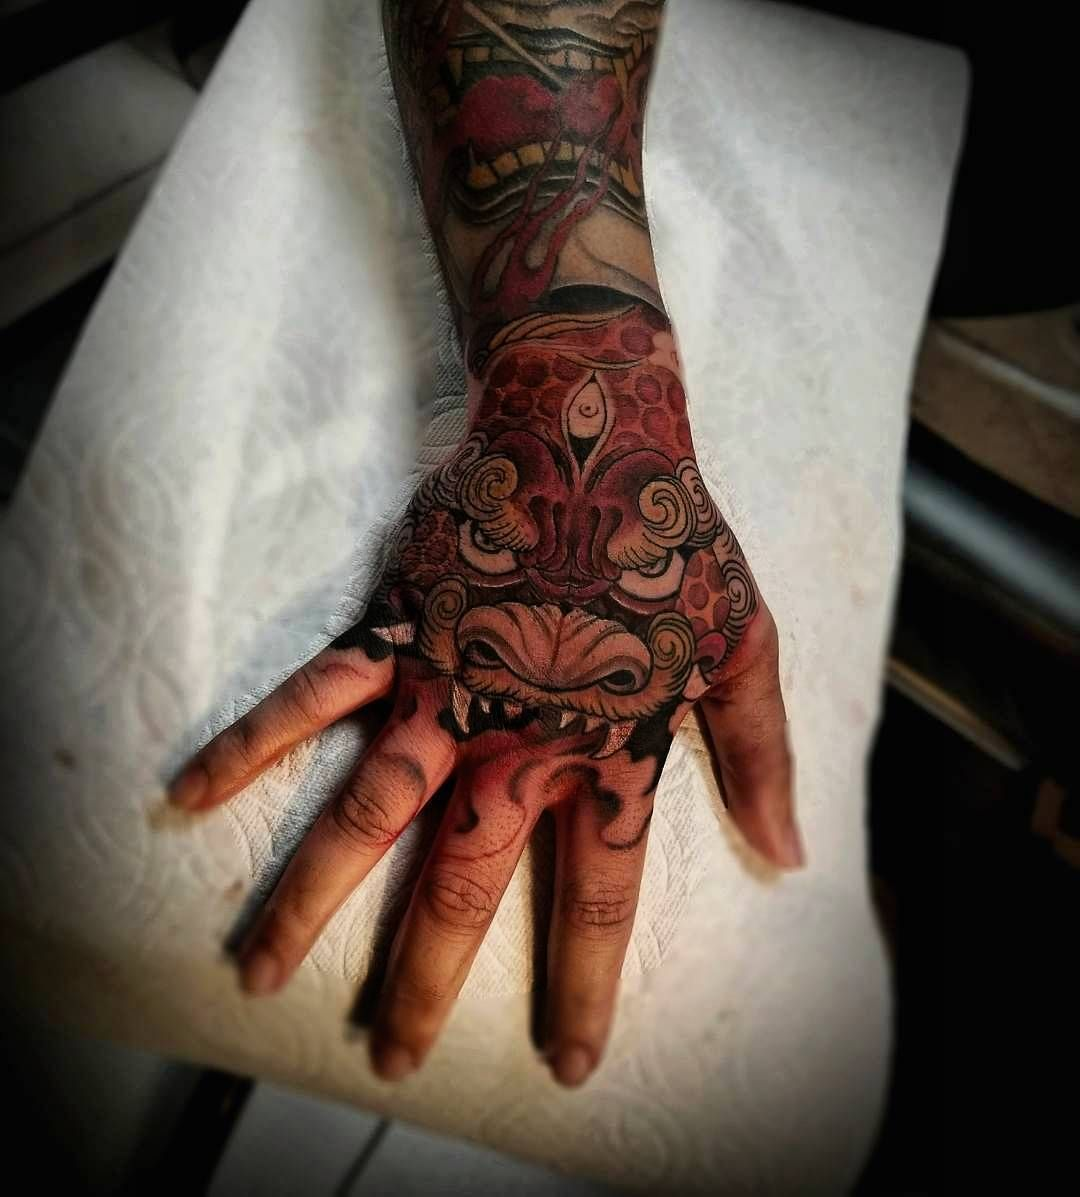 706 Likes 9 Comments Asian Inkspiration Asian Inkspiration On Instagram Incredible Hand Tattoos By Tristen Chronicink Asian Inkspiration Instag